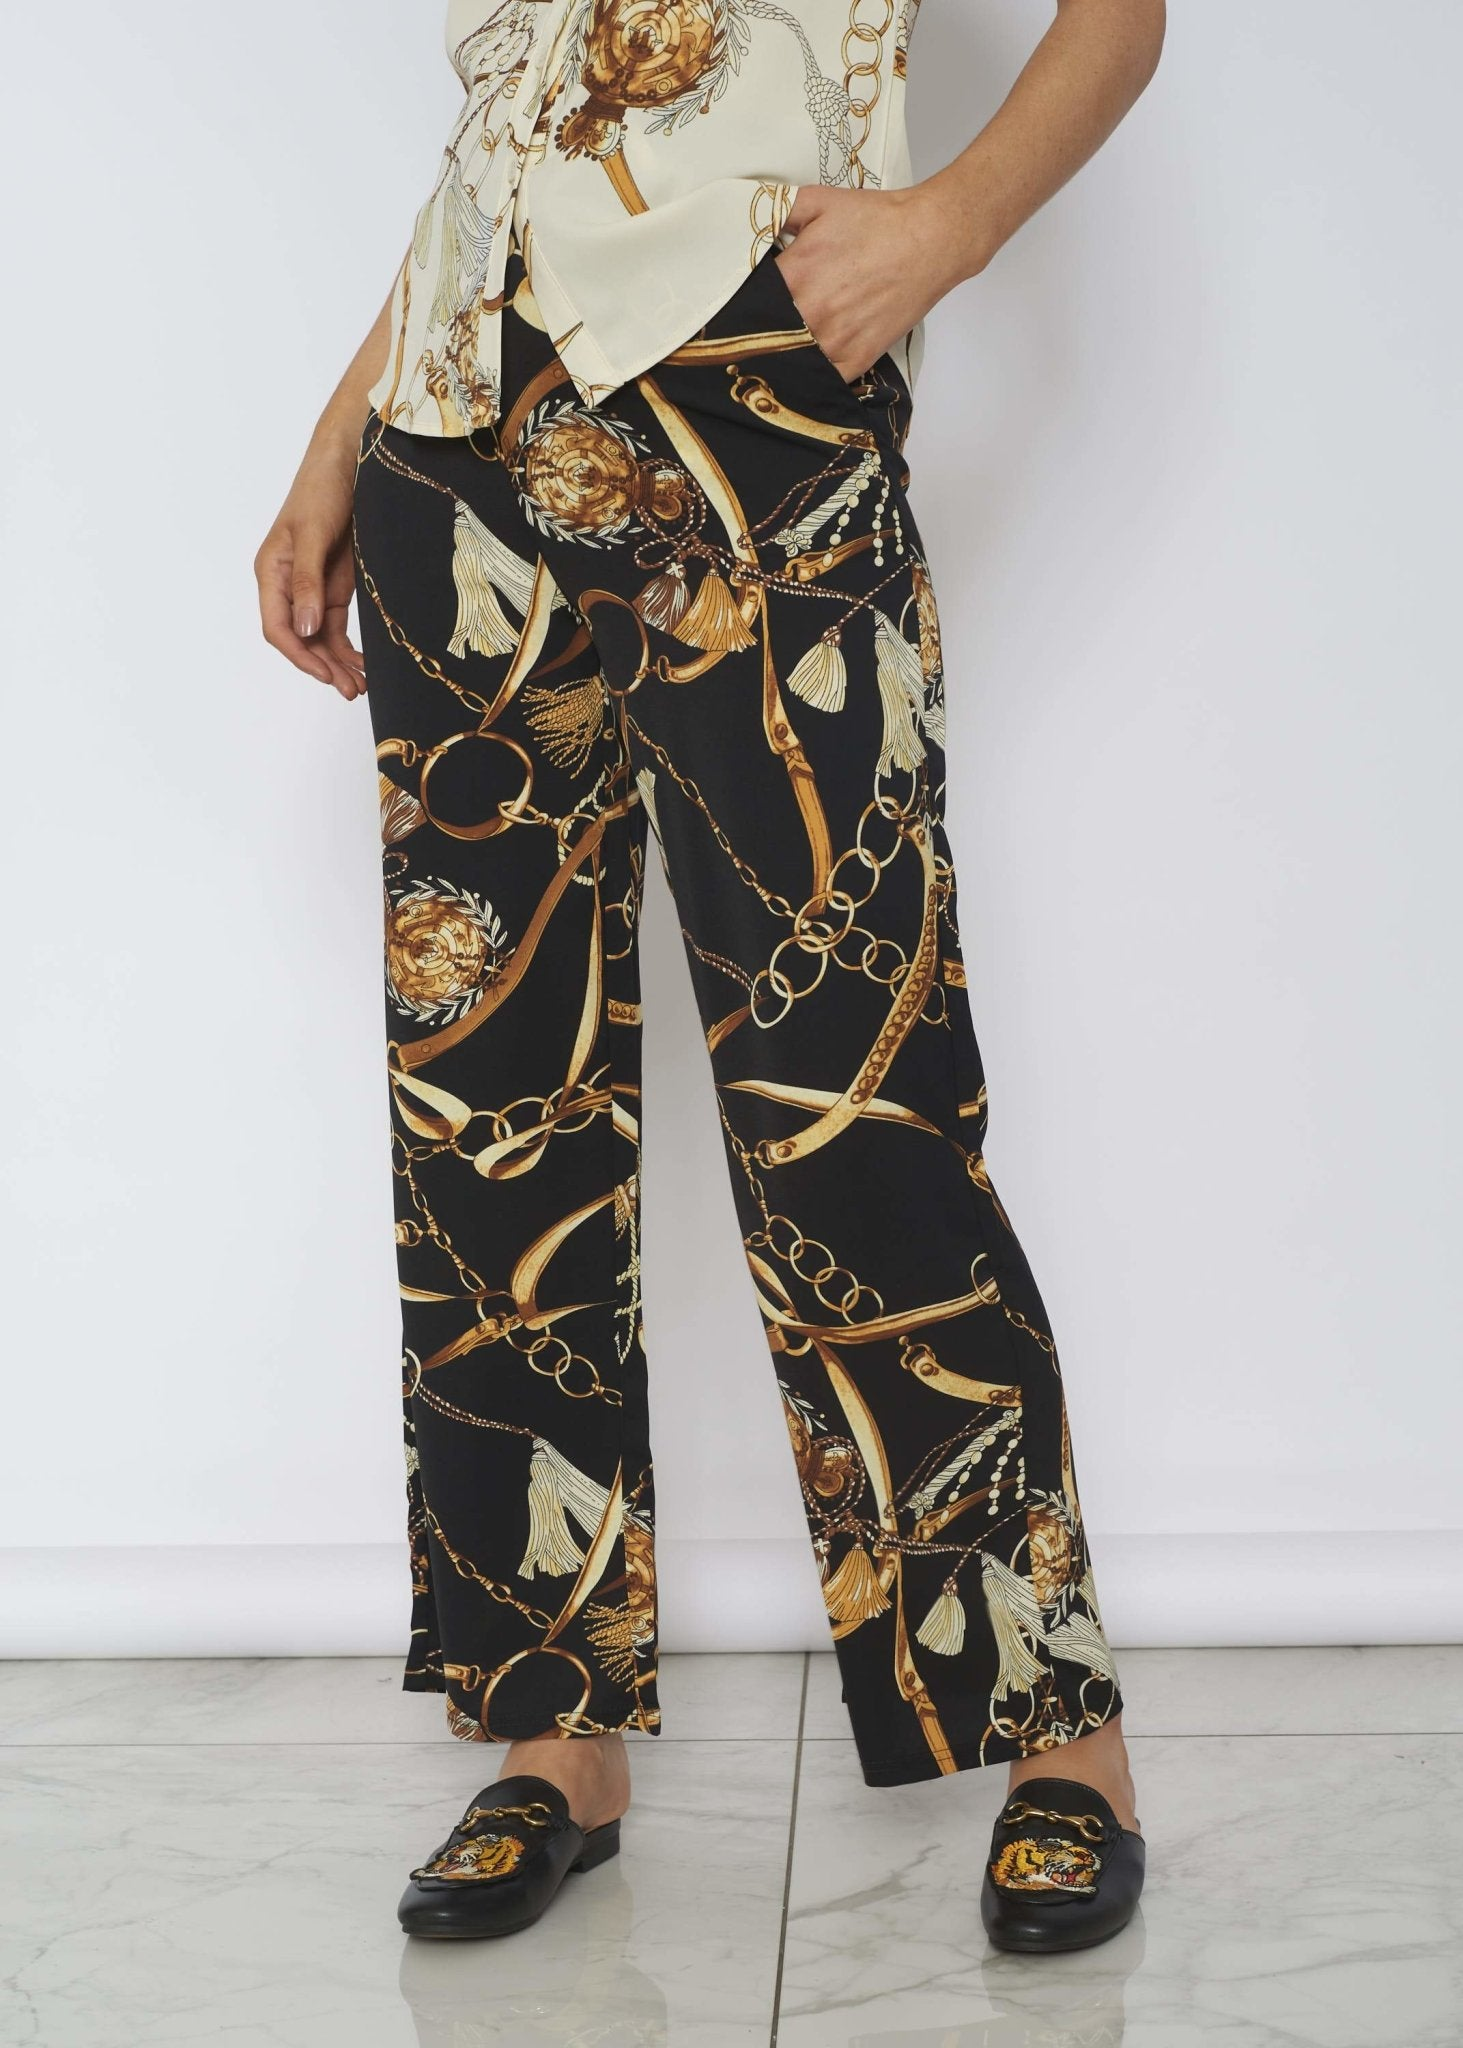 Scarlet Gold Print Trousers In Black - The Walk in Wardrobe